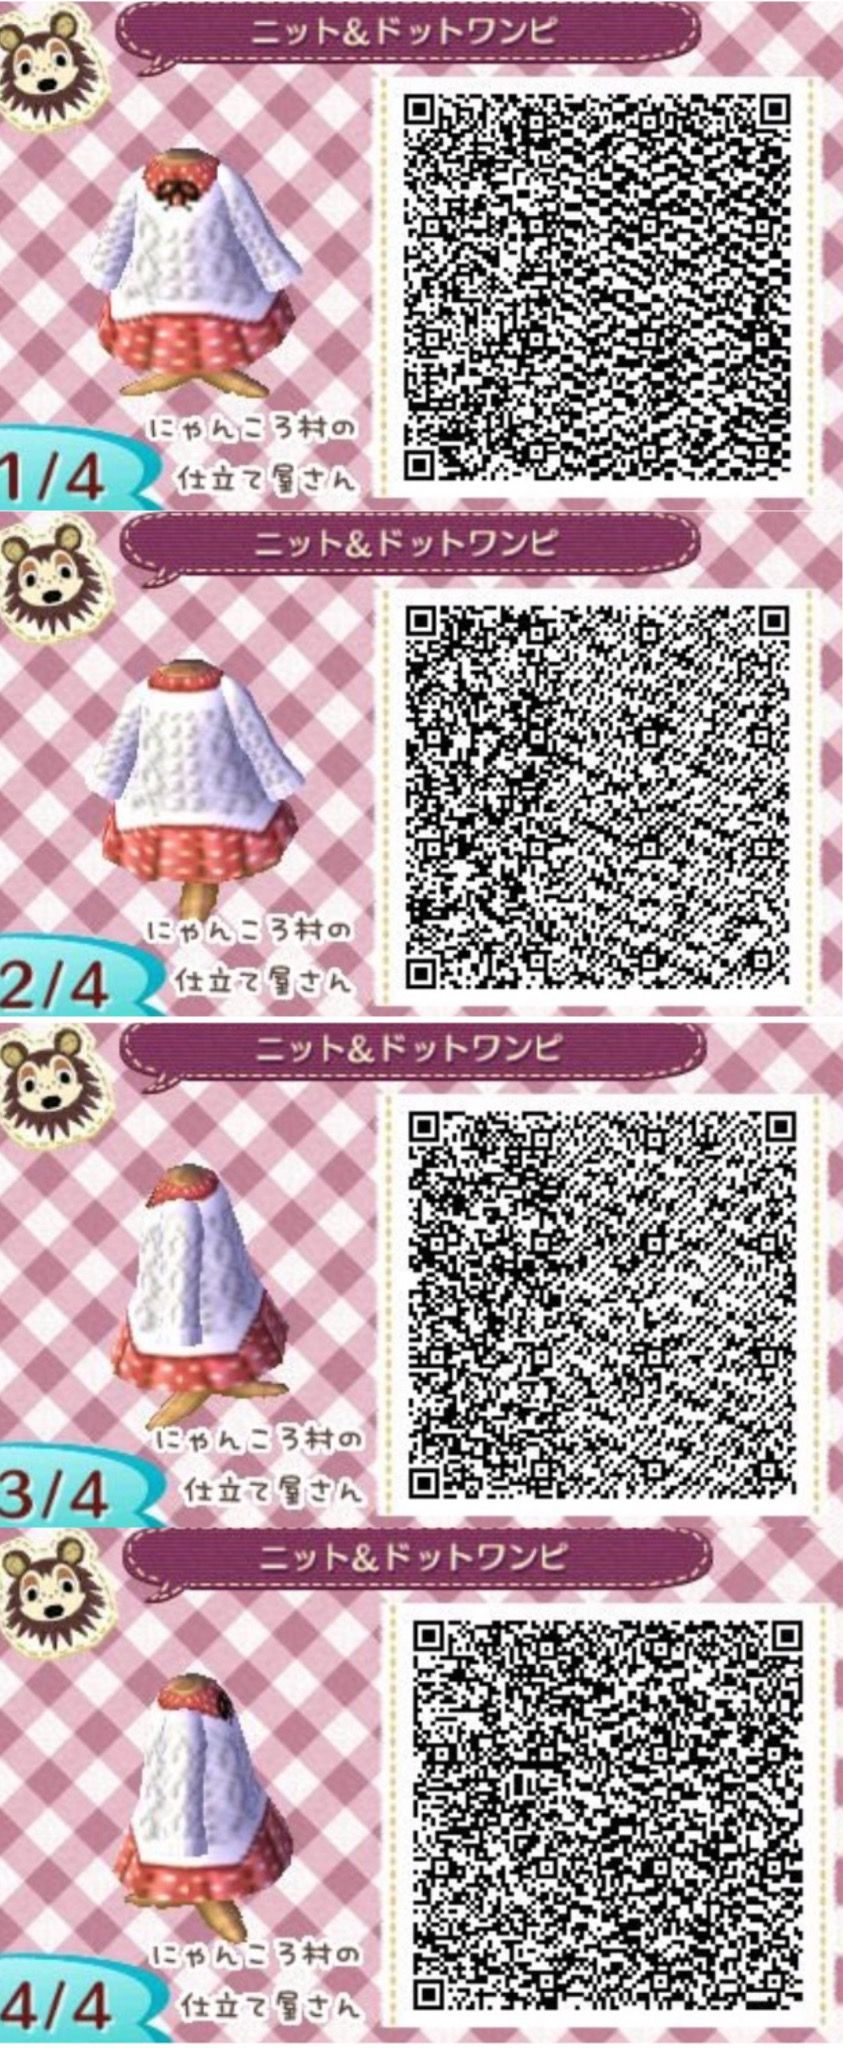 Image of: Cute Sweater White Pink Cardigan Winter Fall Animal Crossing New Leaf Qr Codes Pinterest Sweater White Pink Cardigan Winter Fall Animal Crossing